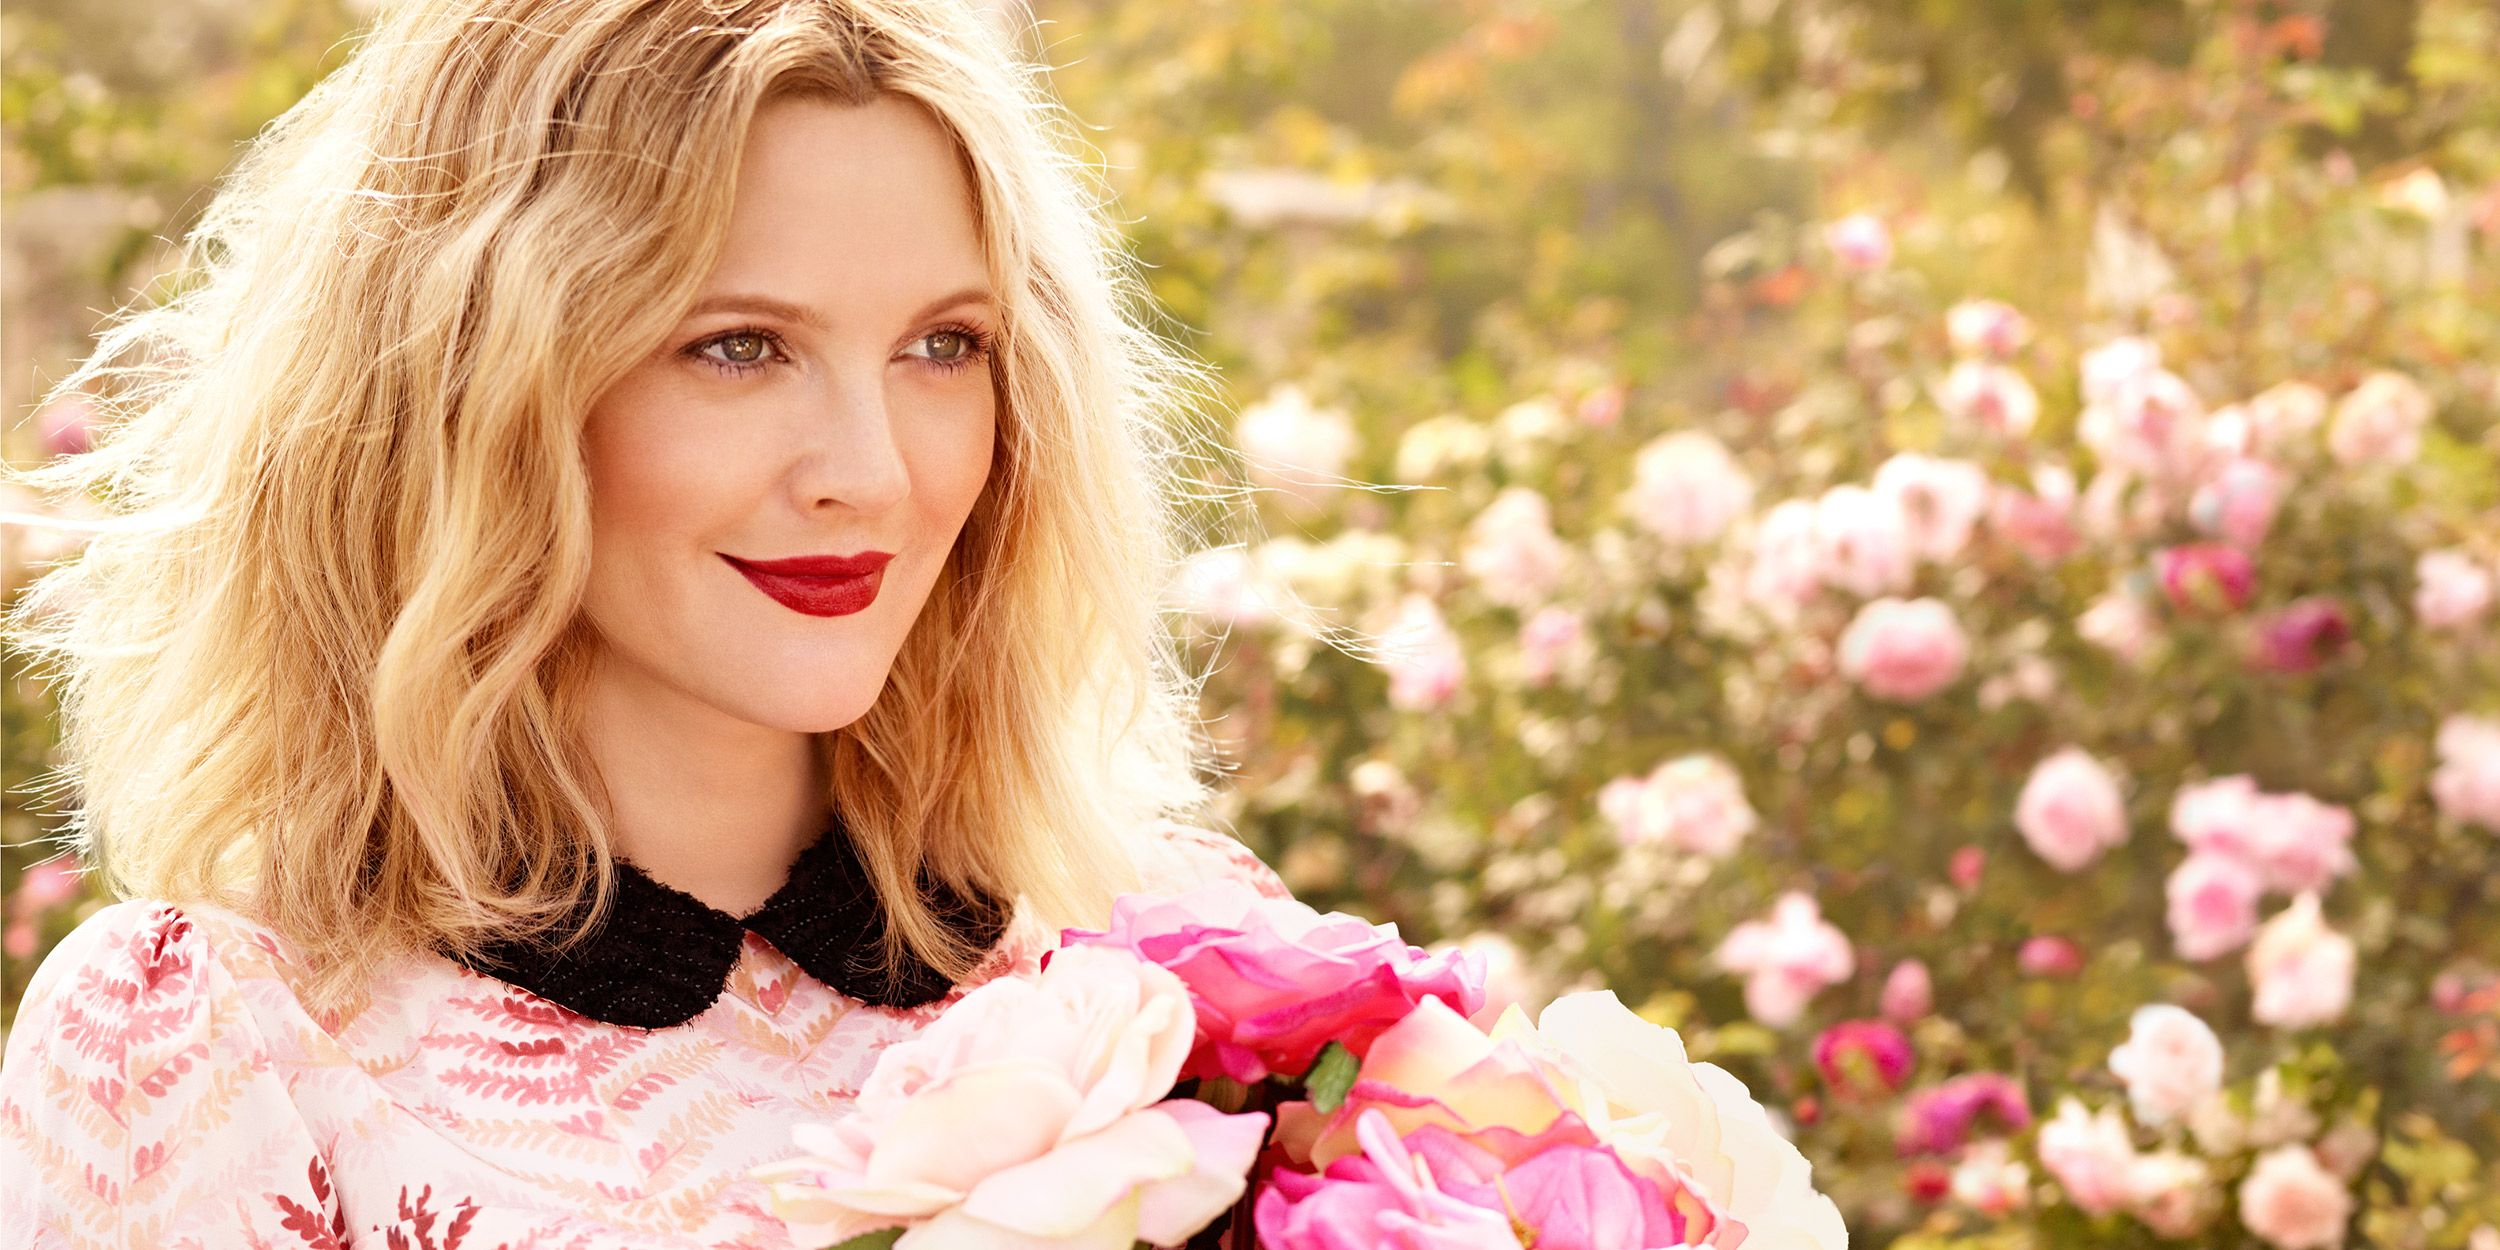 Drew Barrymore beauty interview